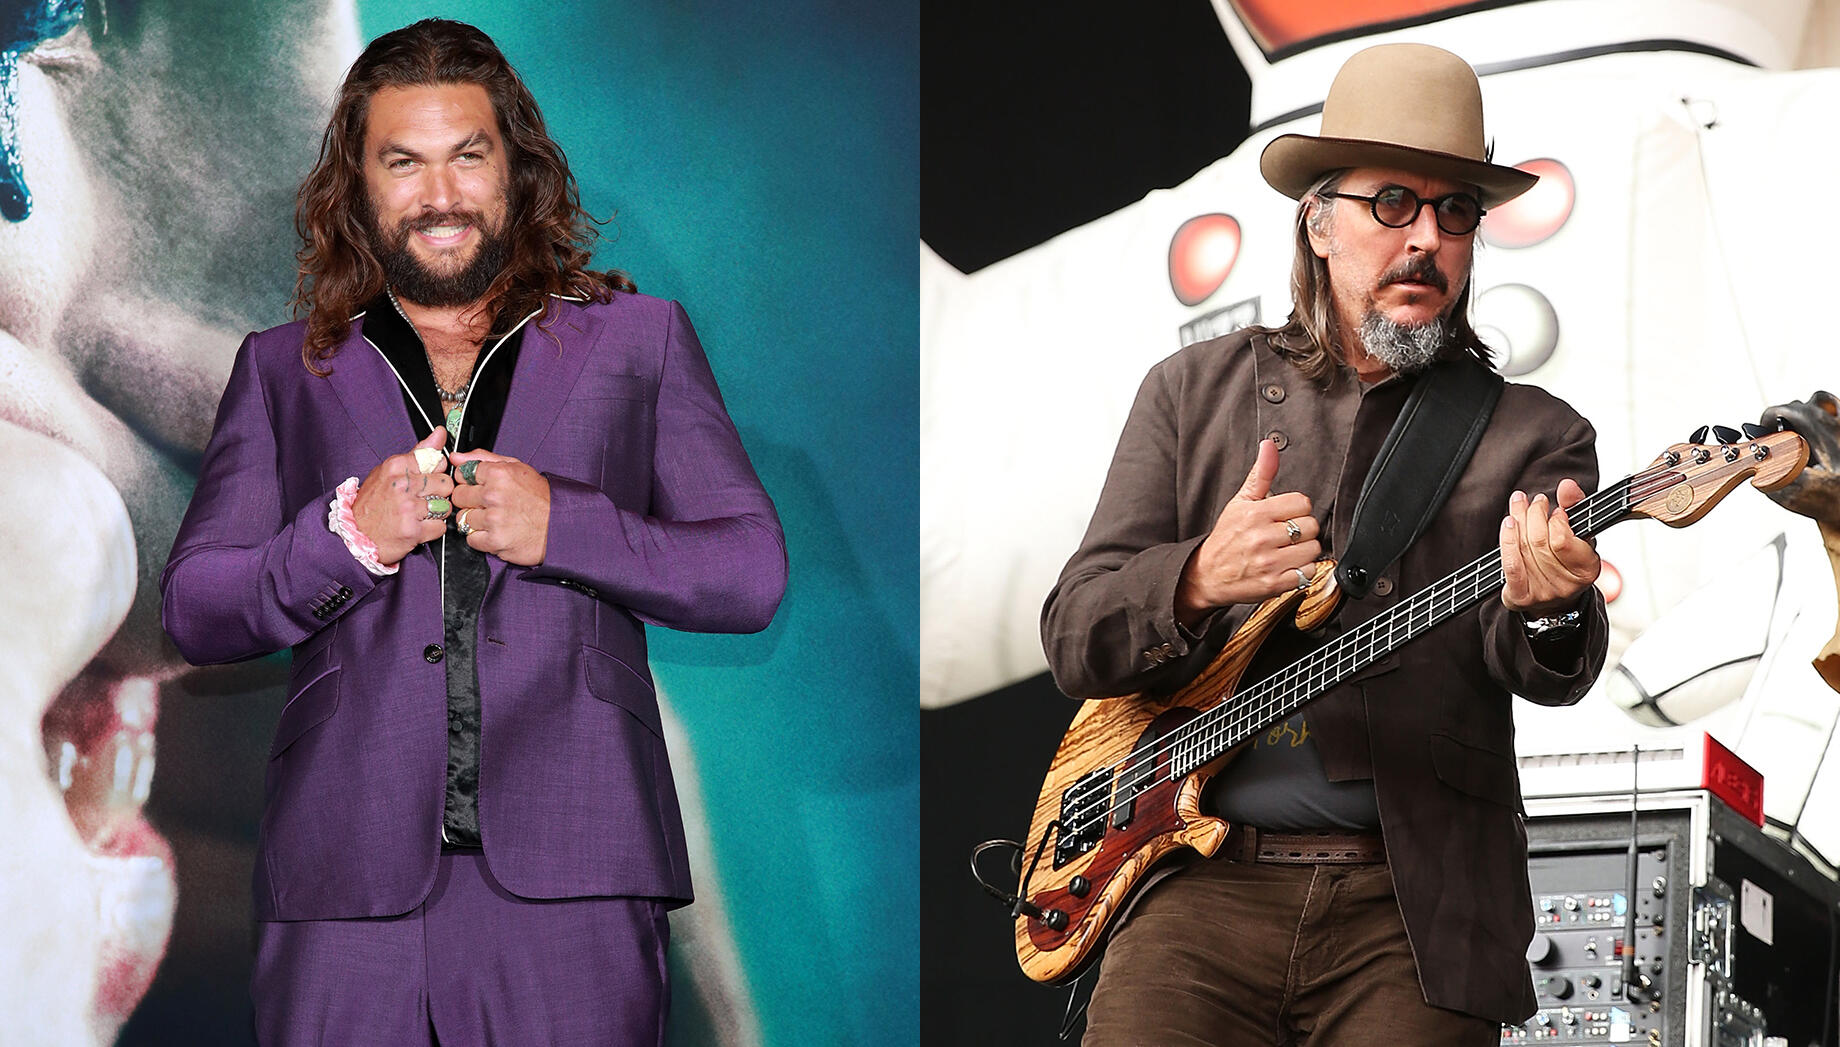 Jason Momoa Can't Contain His Joy After Les Claypool Gives Him A Bass